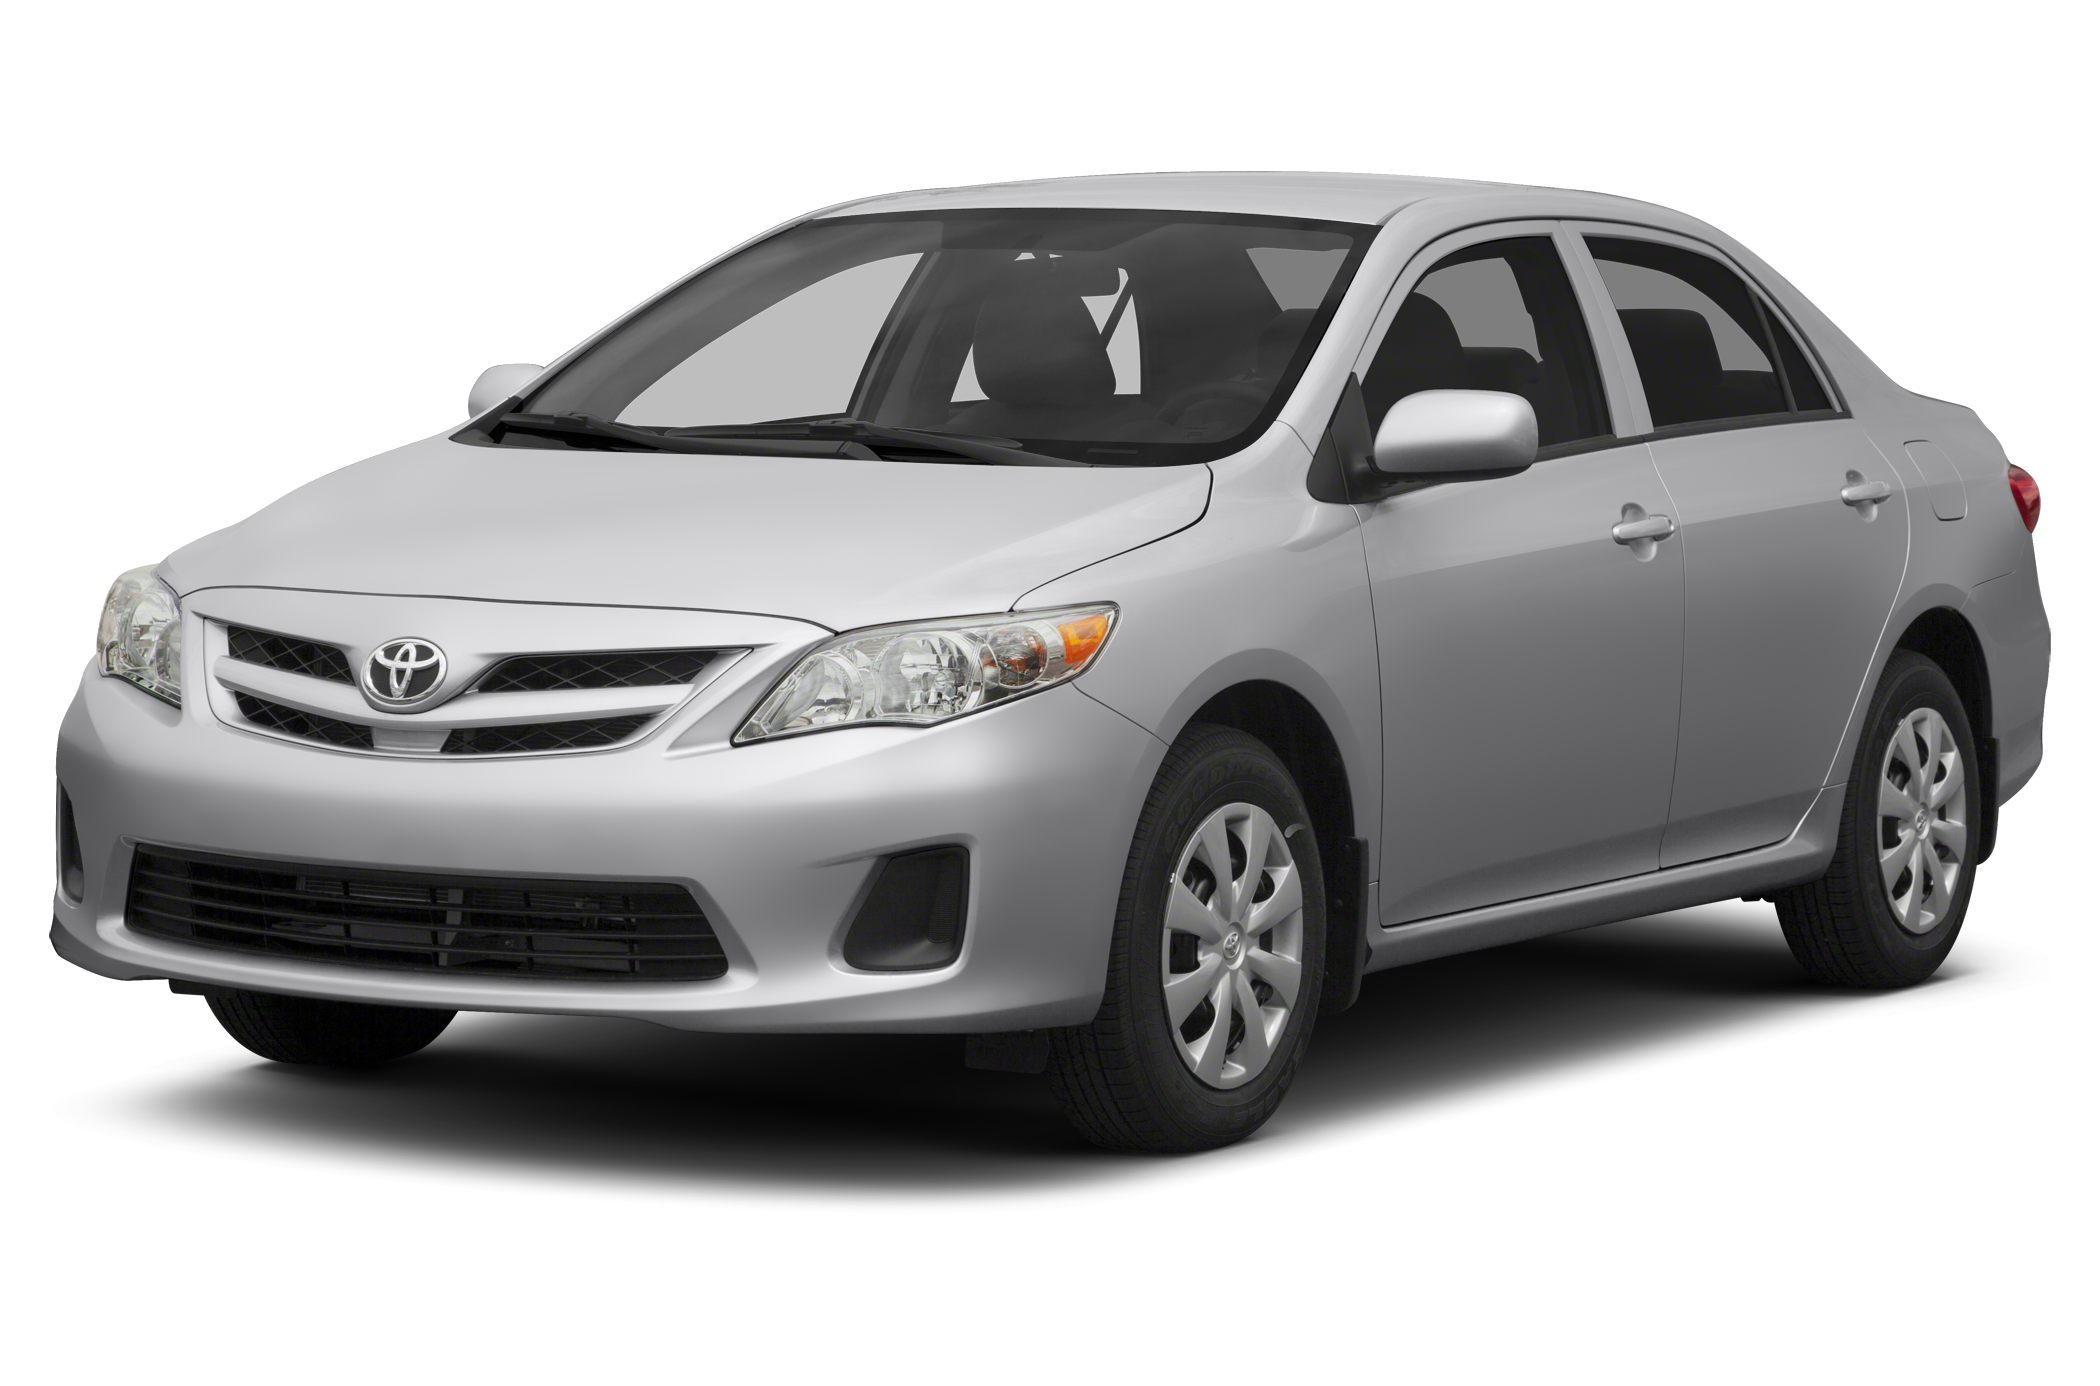 2013 Toyota Corolla LE Sedan for sale in Owensboro for $14,428 with 42,656 miles